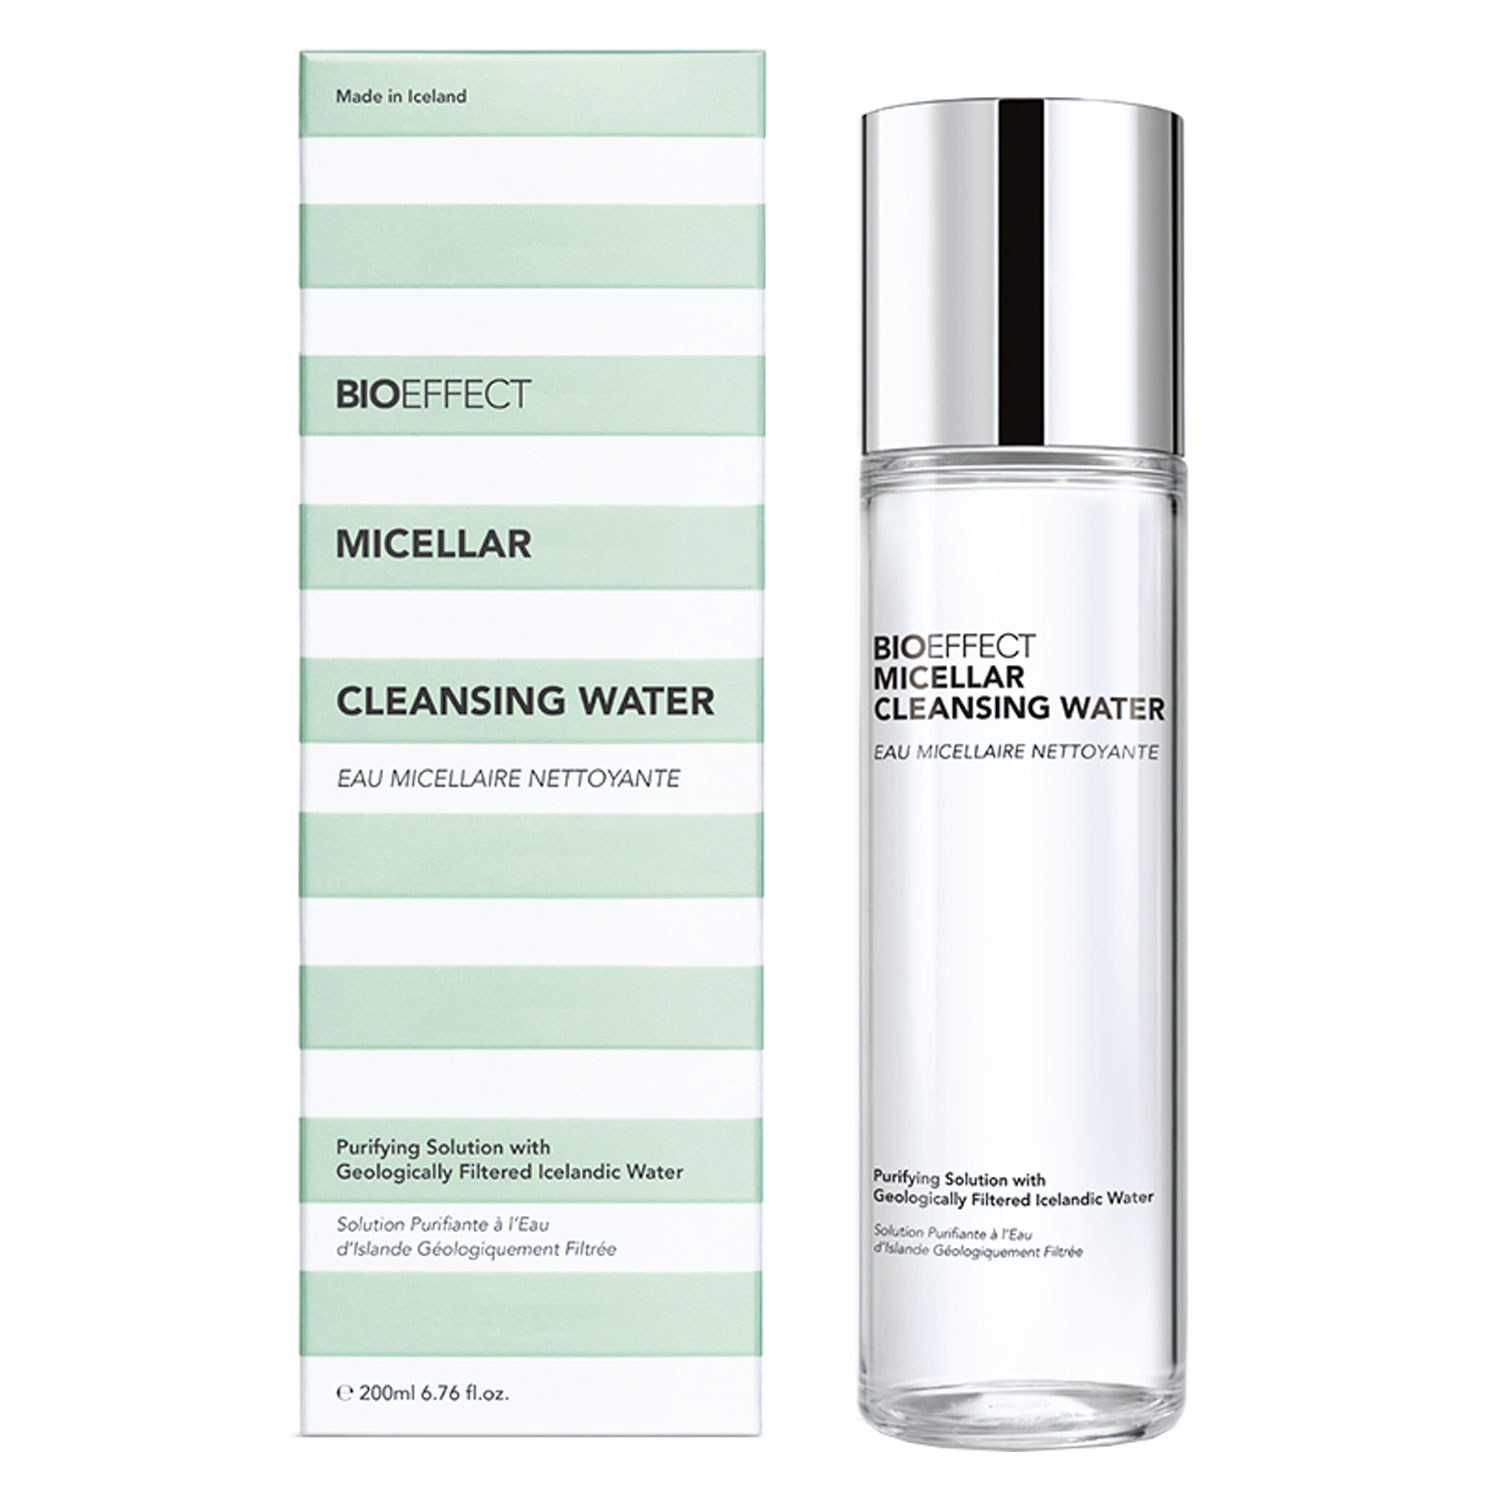 BIOEFFECT - MICELLAR CLEANSING WATER